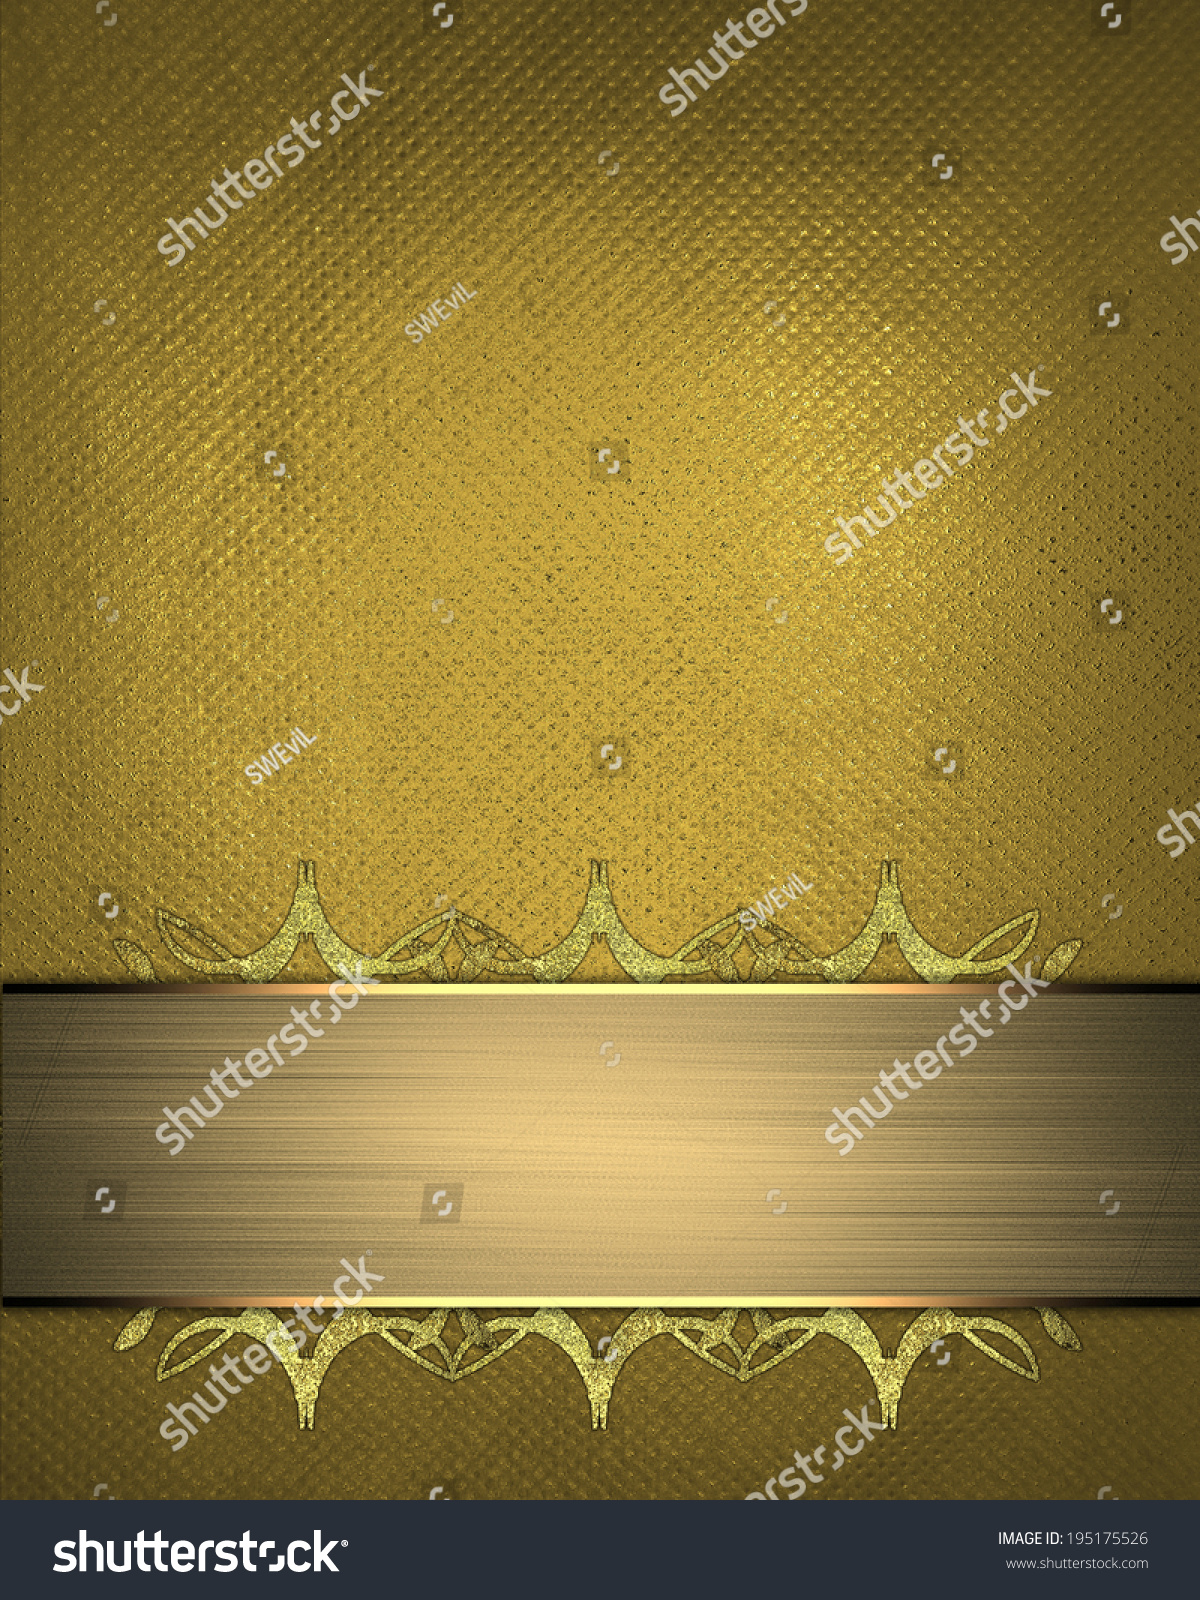 Gold Background Decorative Gold Plate Patterns Stock Illustration ...